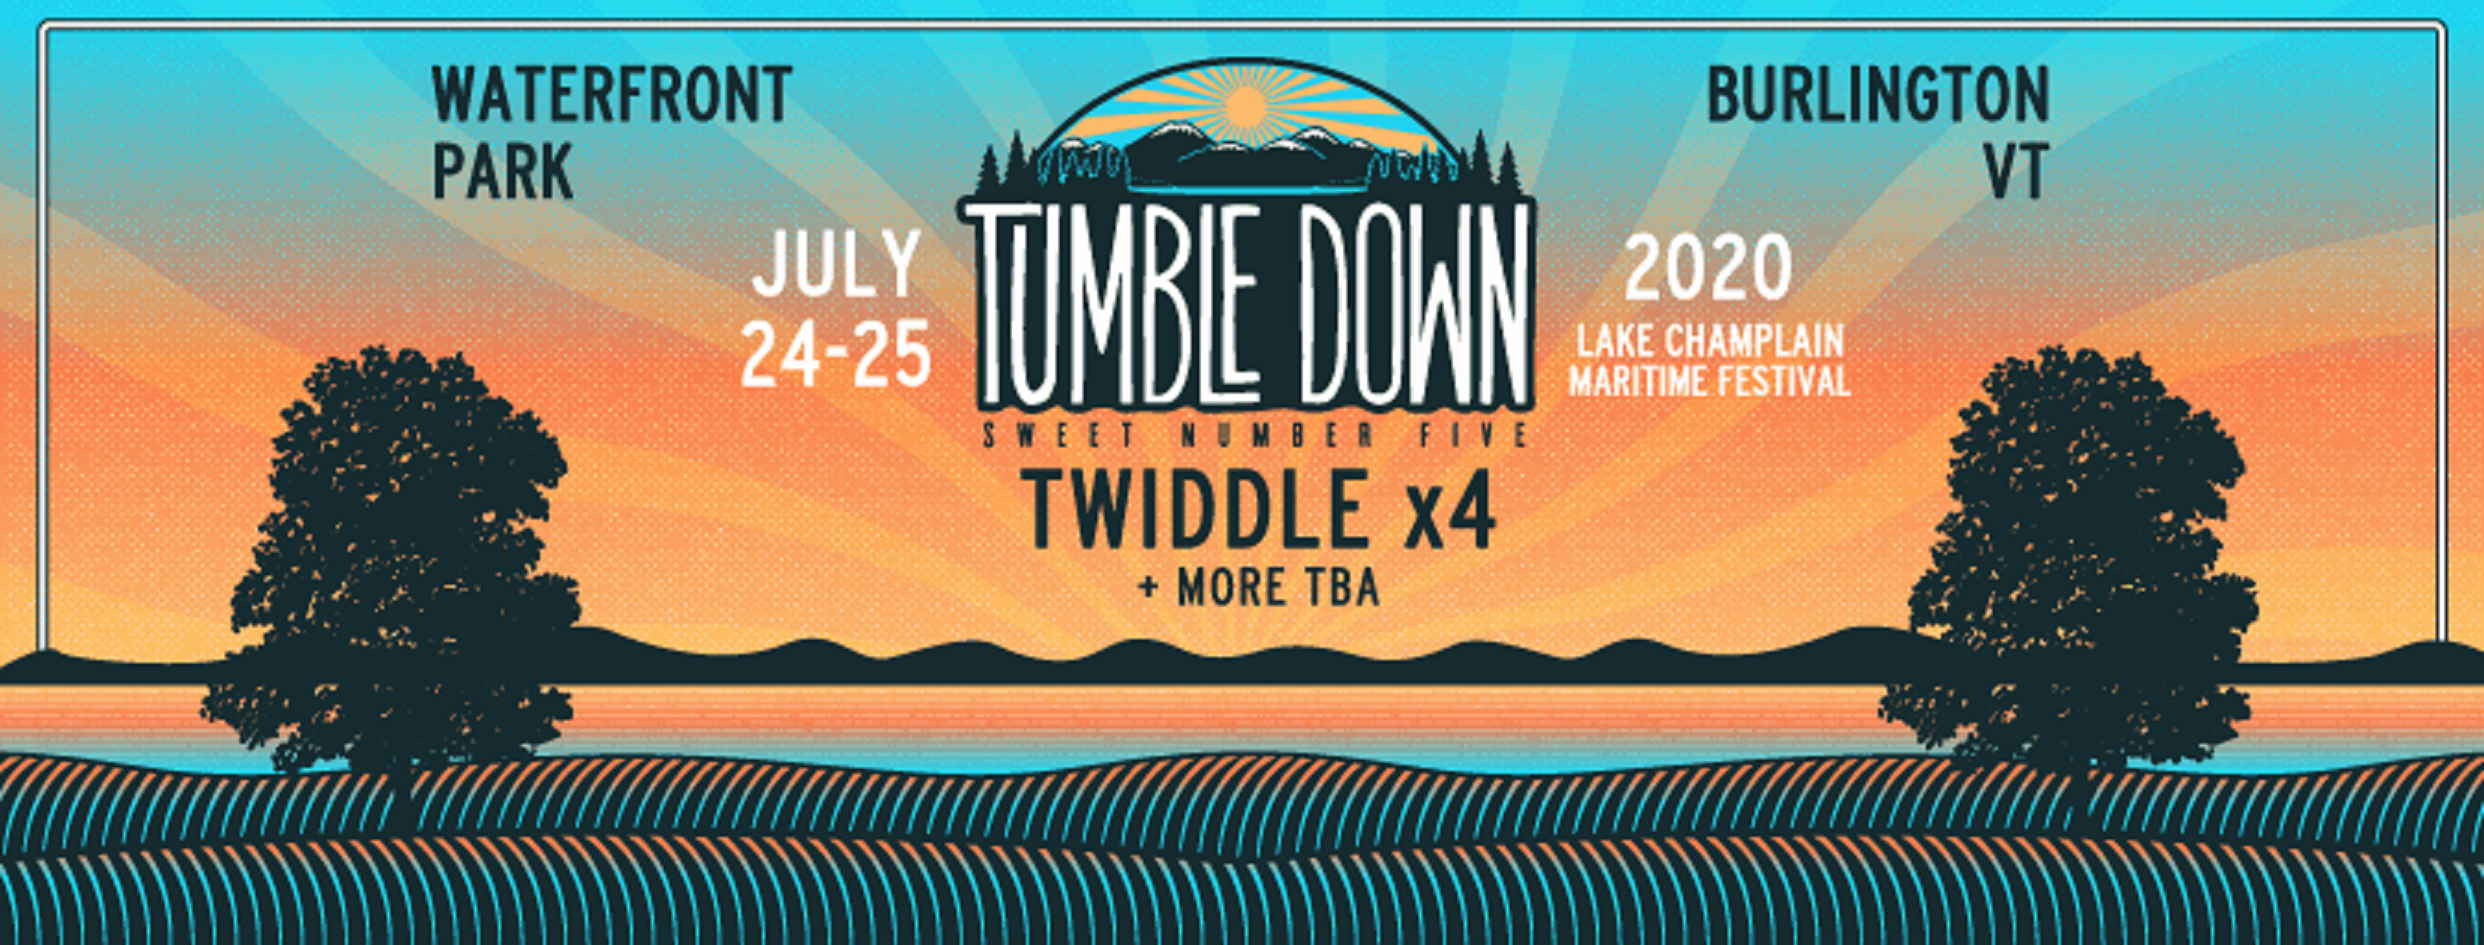 JUST ANNOUNCED: Twiddle's Tumble Down 7/24 - 7/25/20 at Waterfront Park